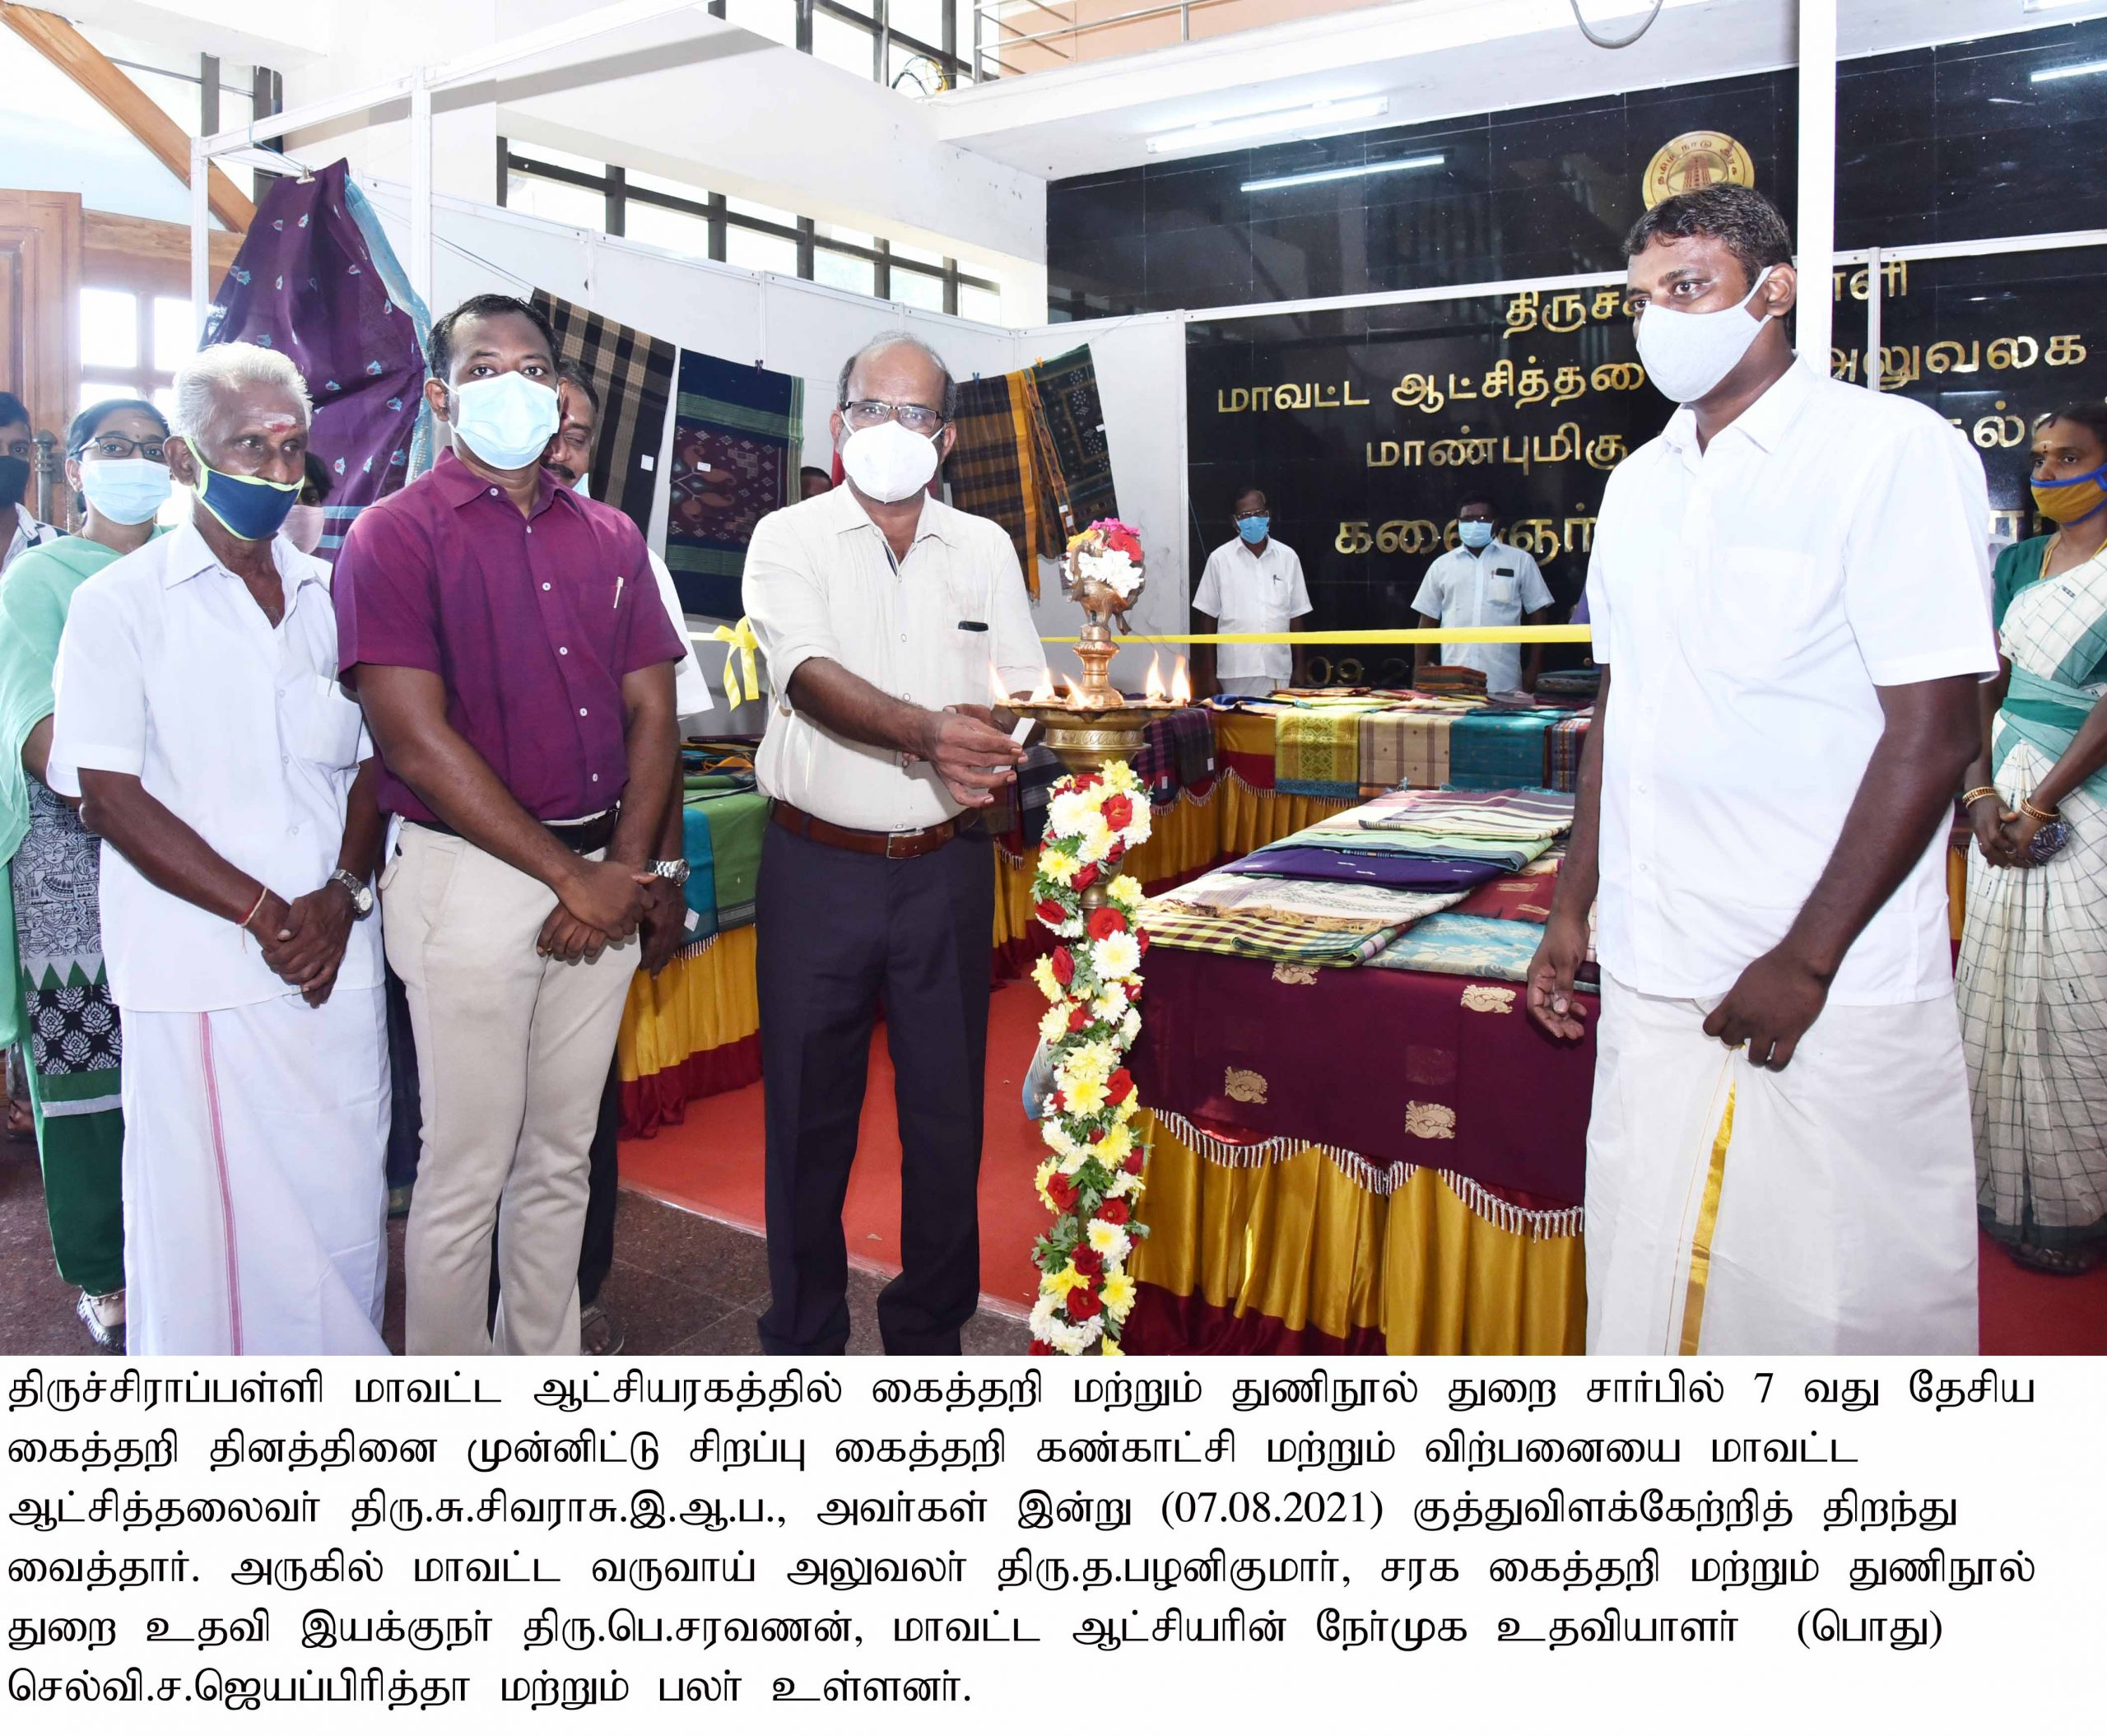 District Collector Lauched Special handloom exhibitionss and sale on 07-08-2021